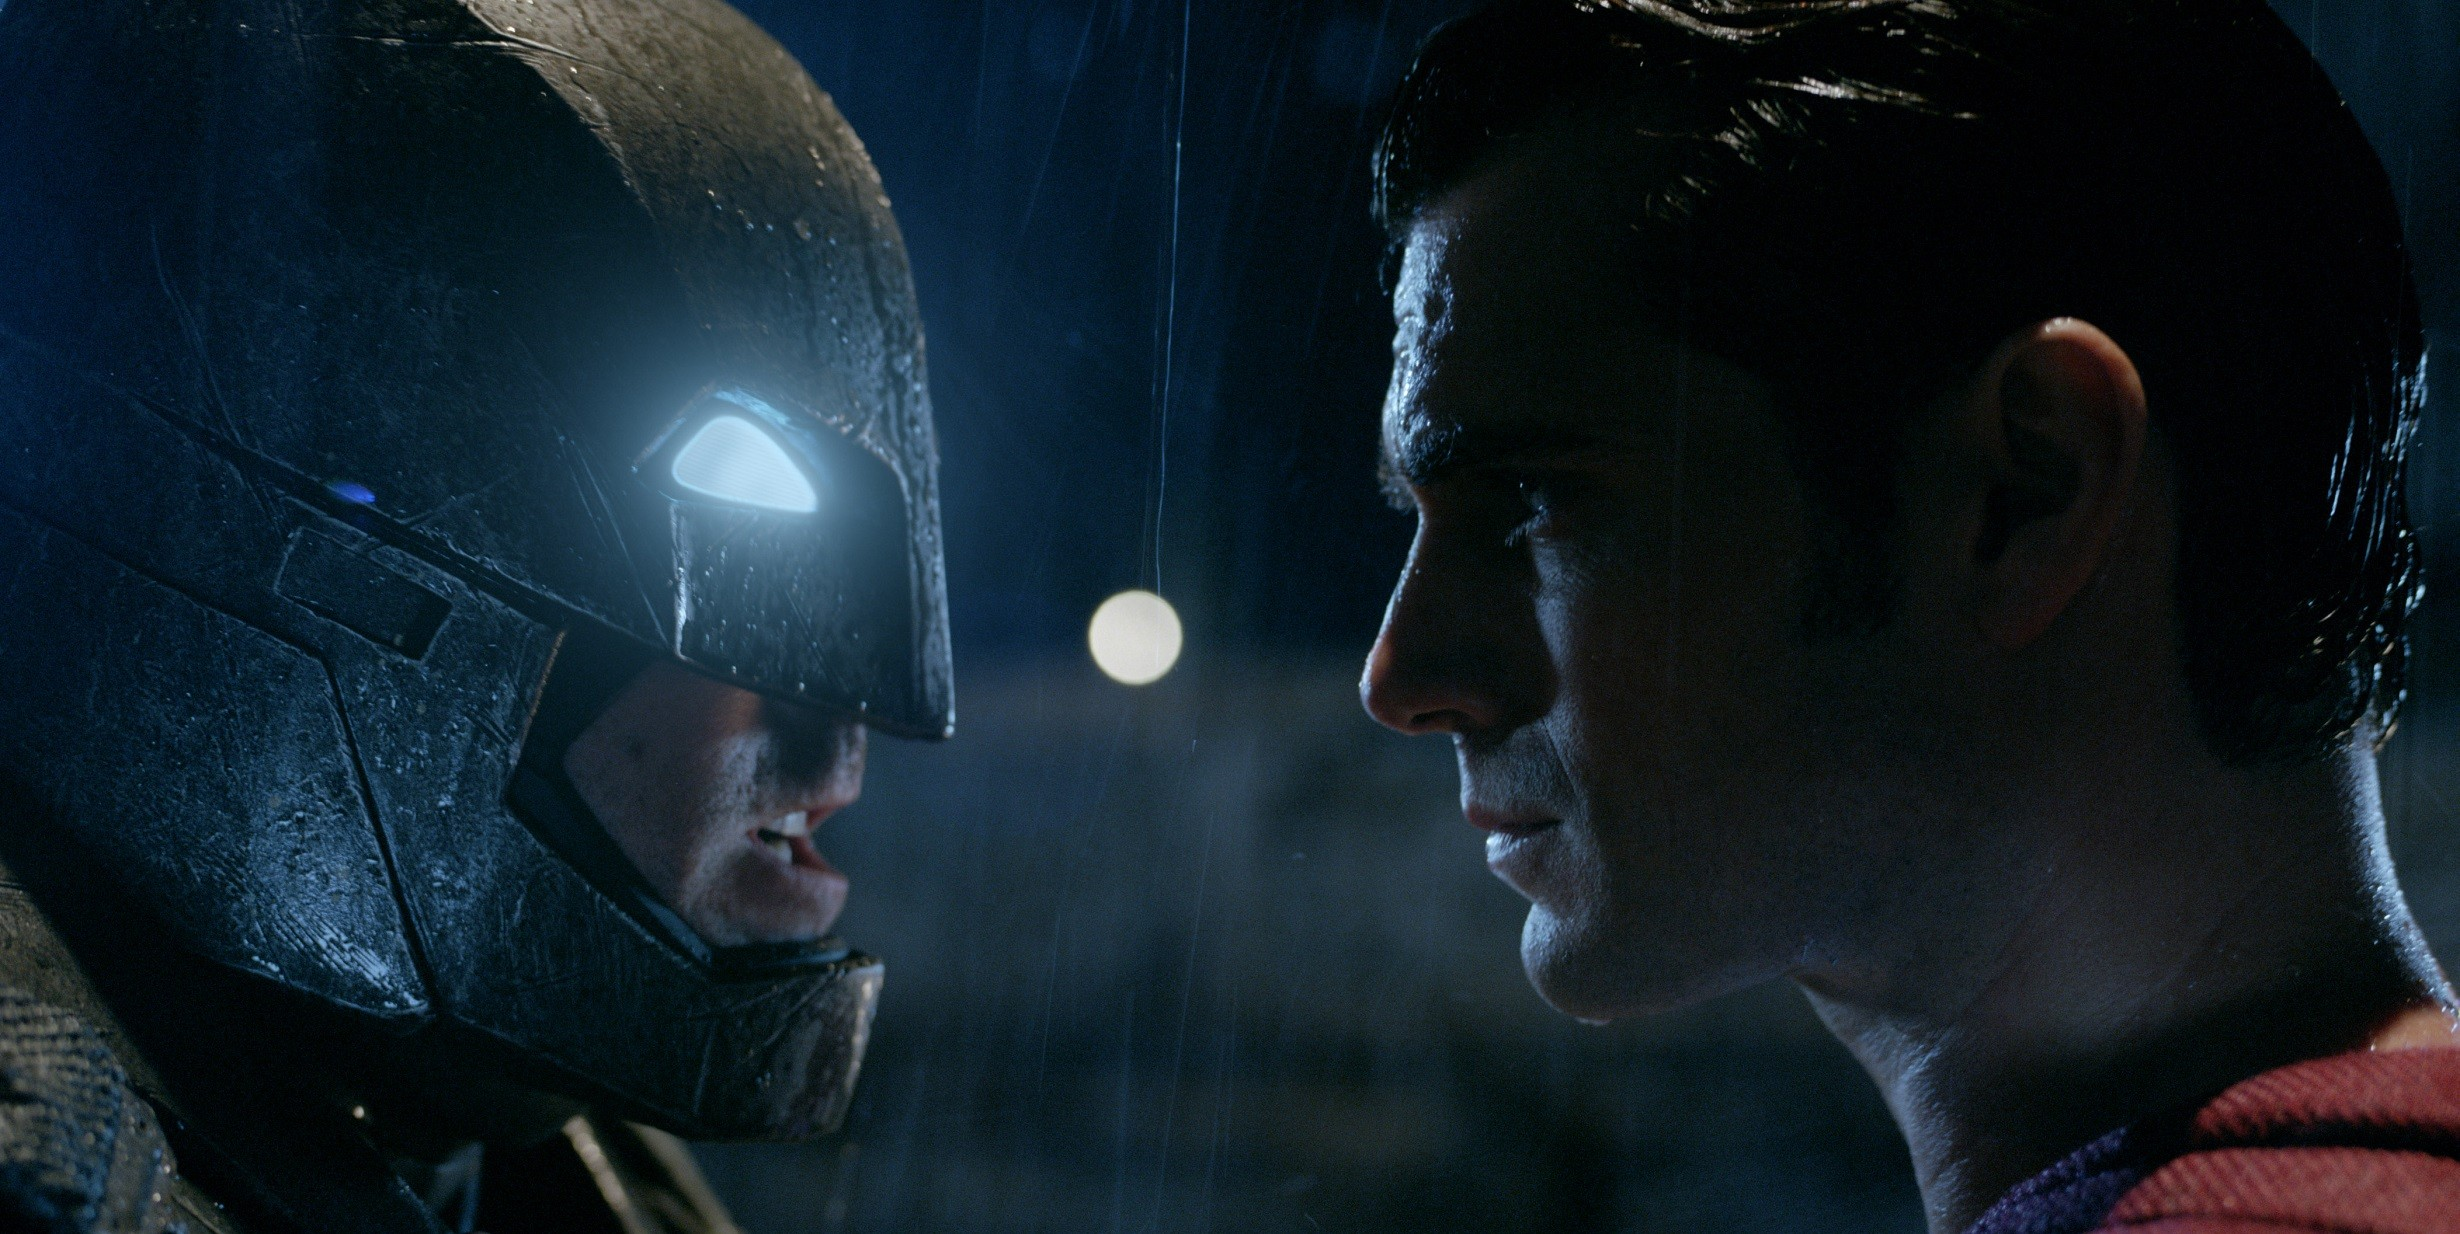 Henry Cavill and Ben Affleck face off